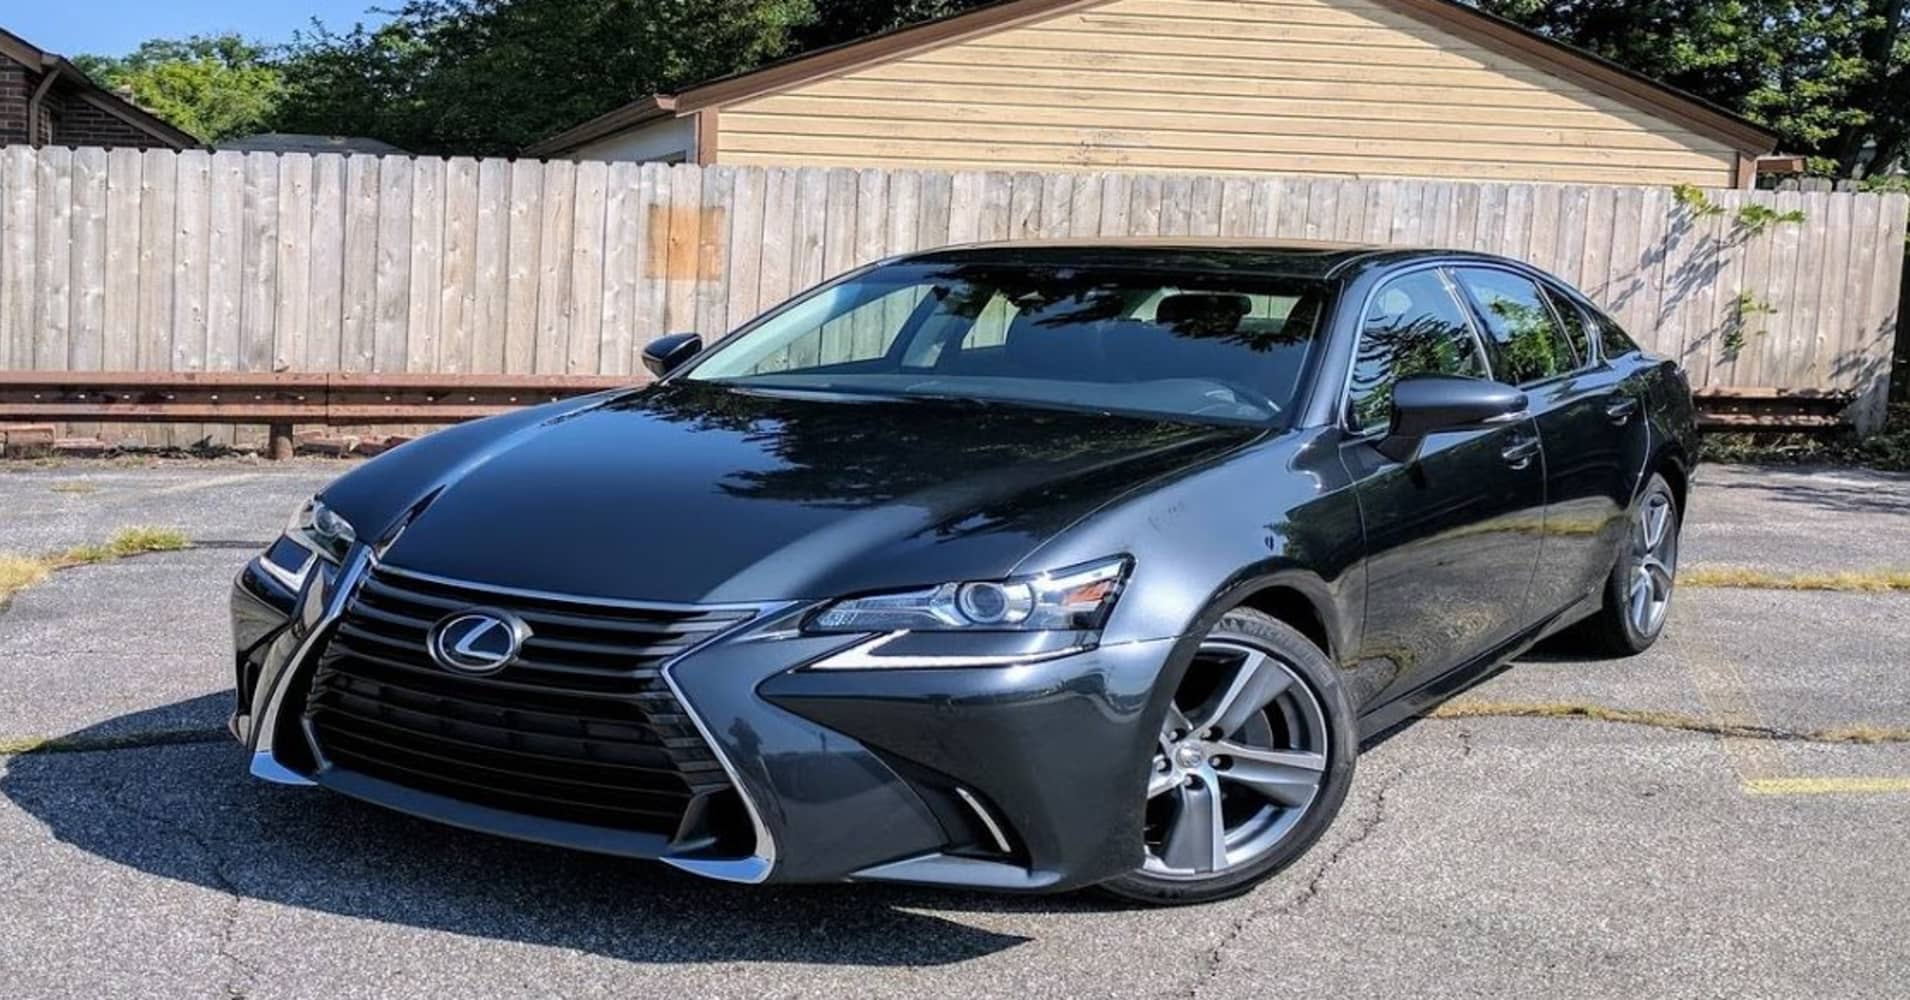 The 2017 Lexus Gs200t Is Best Value In Luxury Sedan Segment